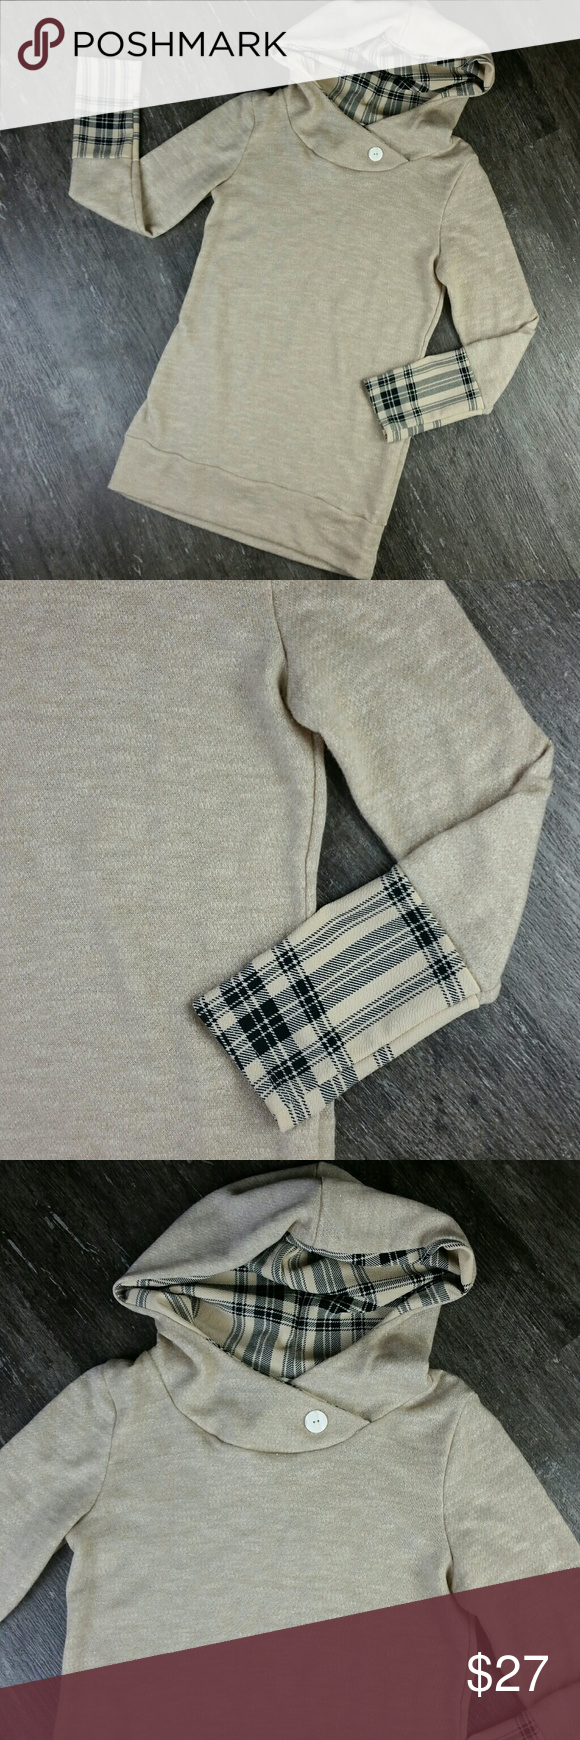 NWOT..LOVE this! Twenty Second Small Long Thin Knit Hoodie Beige Black Plaid Wide Cuffs Super Cute Wide Cuffs, Long Design, Great with jeggings or leggings and an awesome pair of boots! Tags were removed but item was never worn.  Crossover front neck with button detail hand wash cold, flat lay dry 26 inch sleeves (measuring from shoulder seam to bottom wrist) 40 inch bust 24 inch length measuring side seam from underarm to bottom of shirt 31 inch length measuring down center back from base…